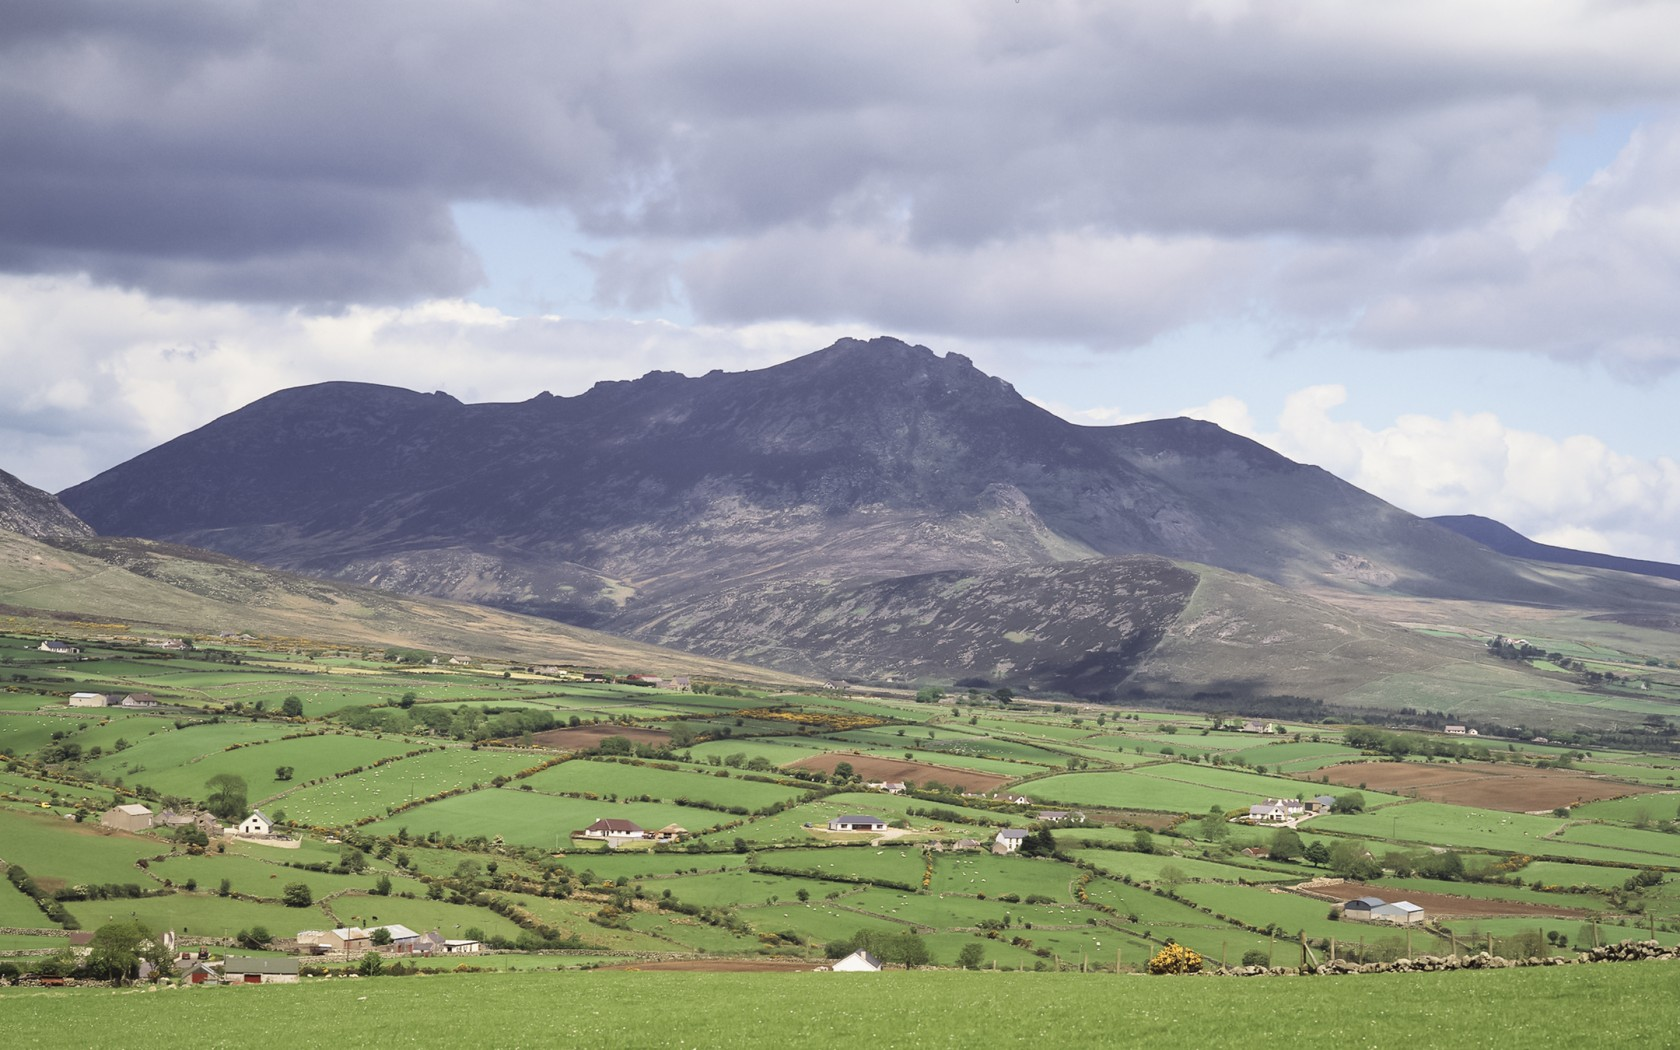 Game of Thrones Filming Location - The Mourne Mountains, in south-east Northern Ireland